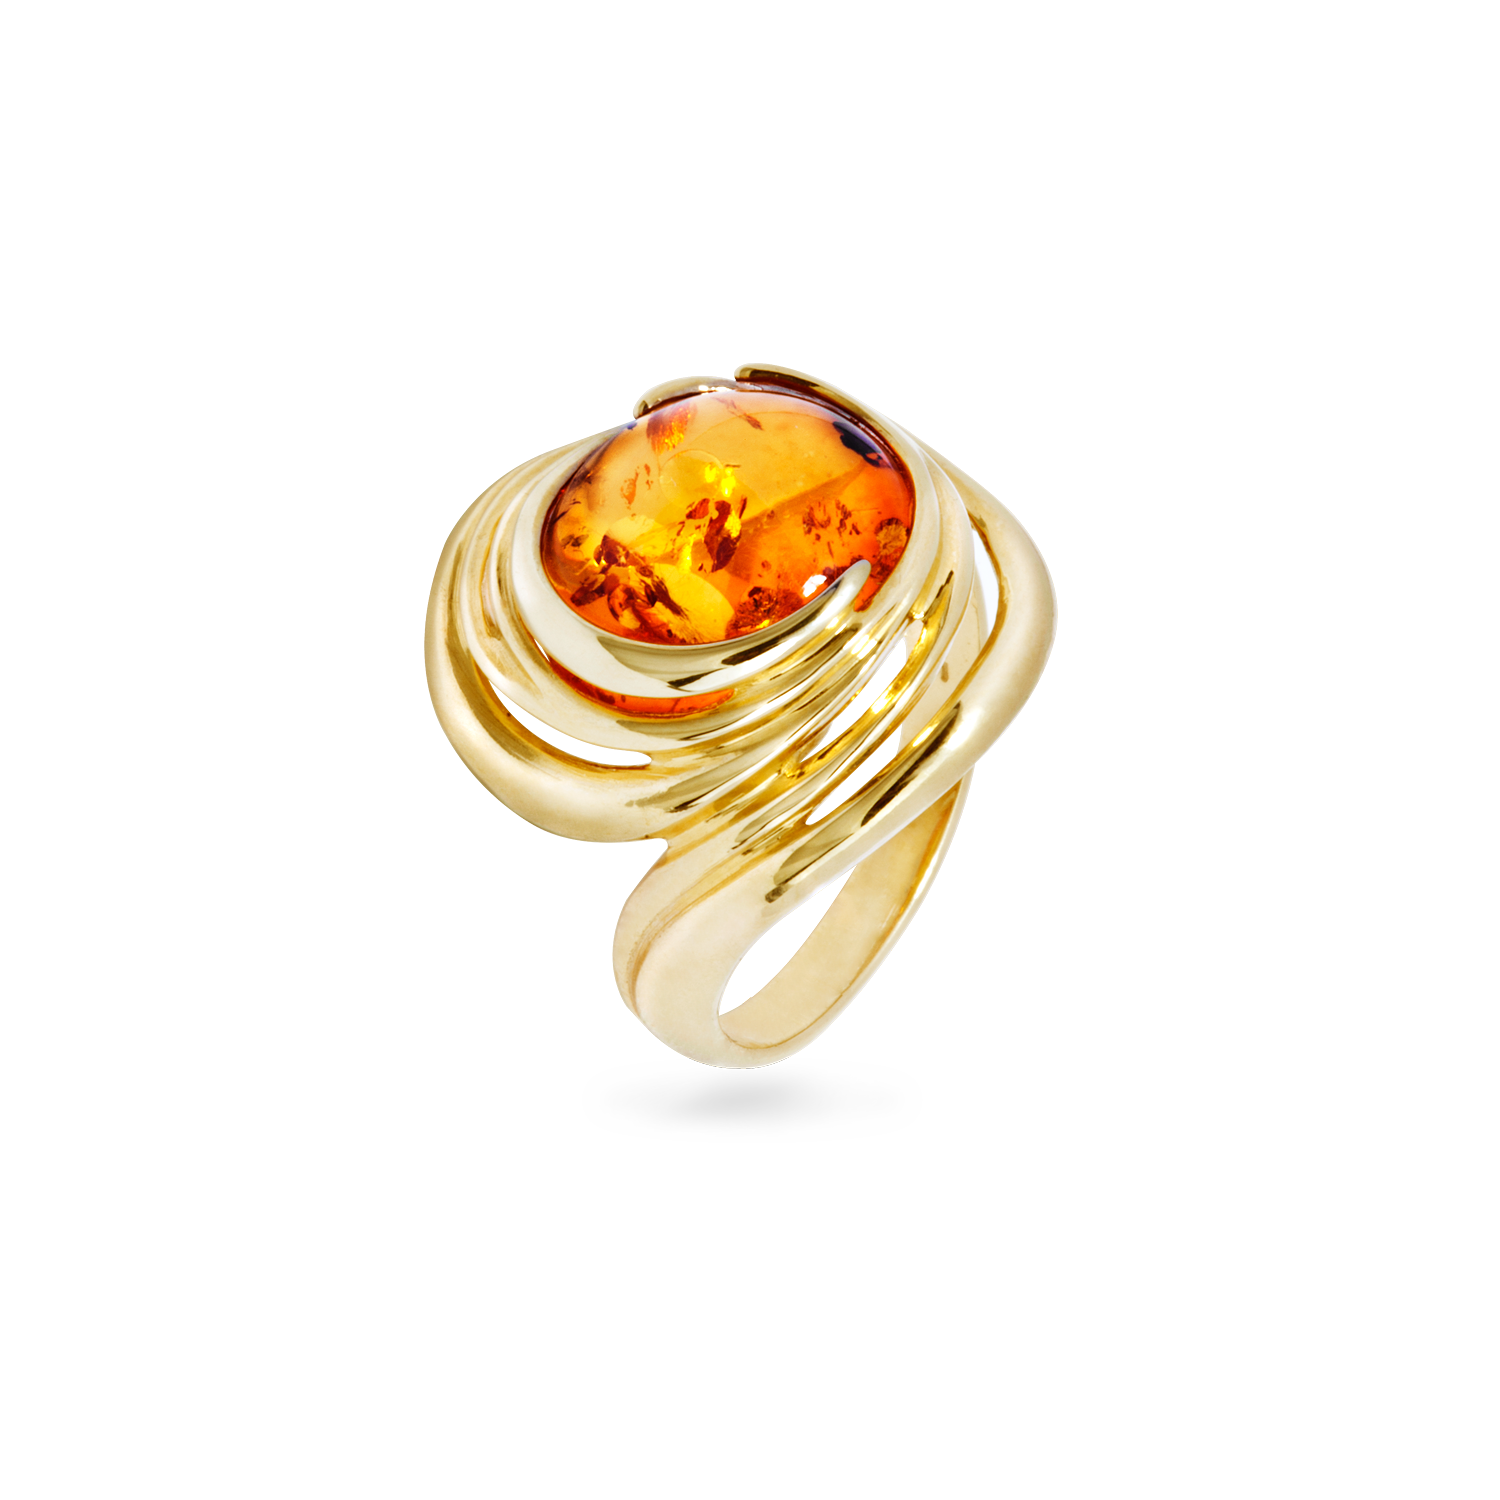 cocktail shieldcocktailrngcitrinefront ncb engagement budet gold rings ring citrine amber yg products marcia shield